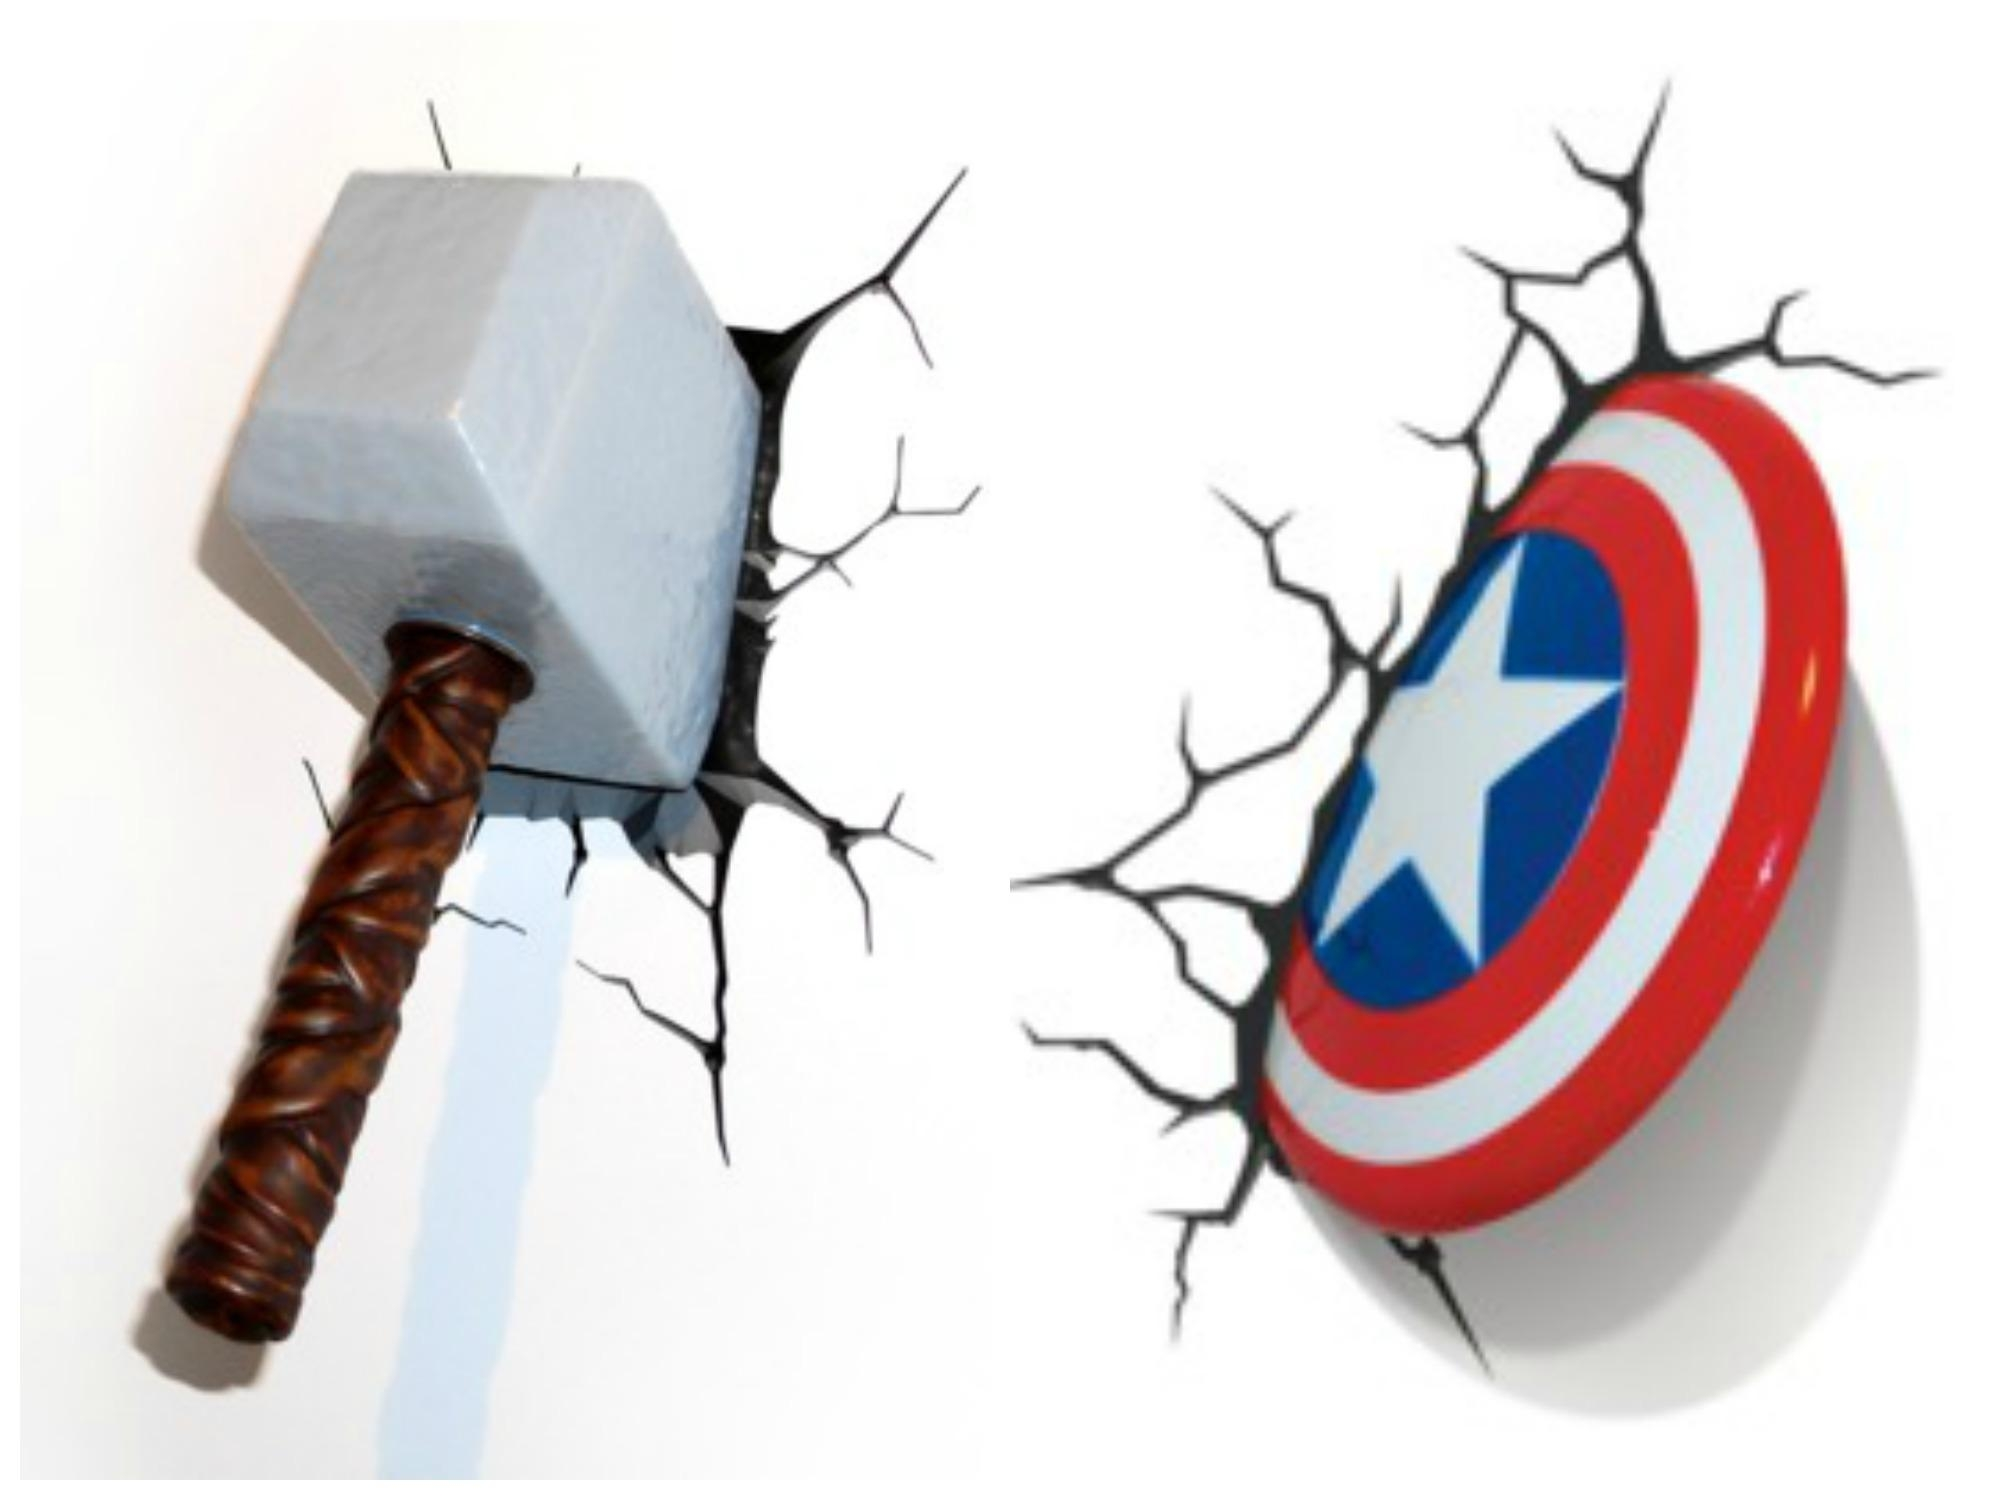 3D Wall Art Thor Hammer Night Light Uk | Wallartideas Pertaining To The Avengers 3D Wall Art Nightlight (View 14 of 20)